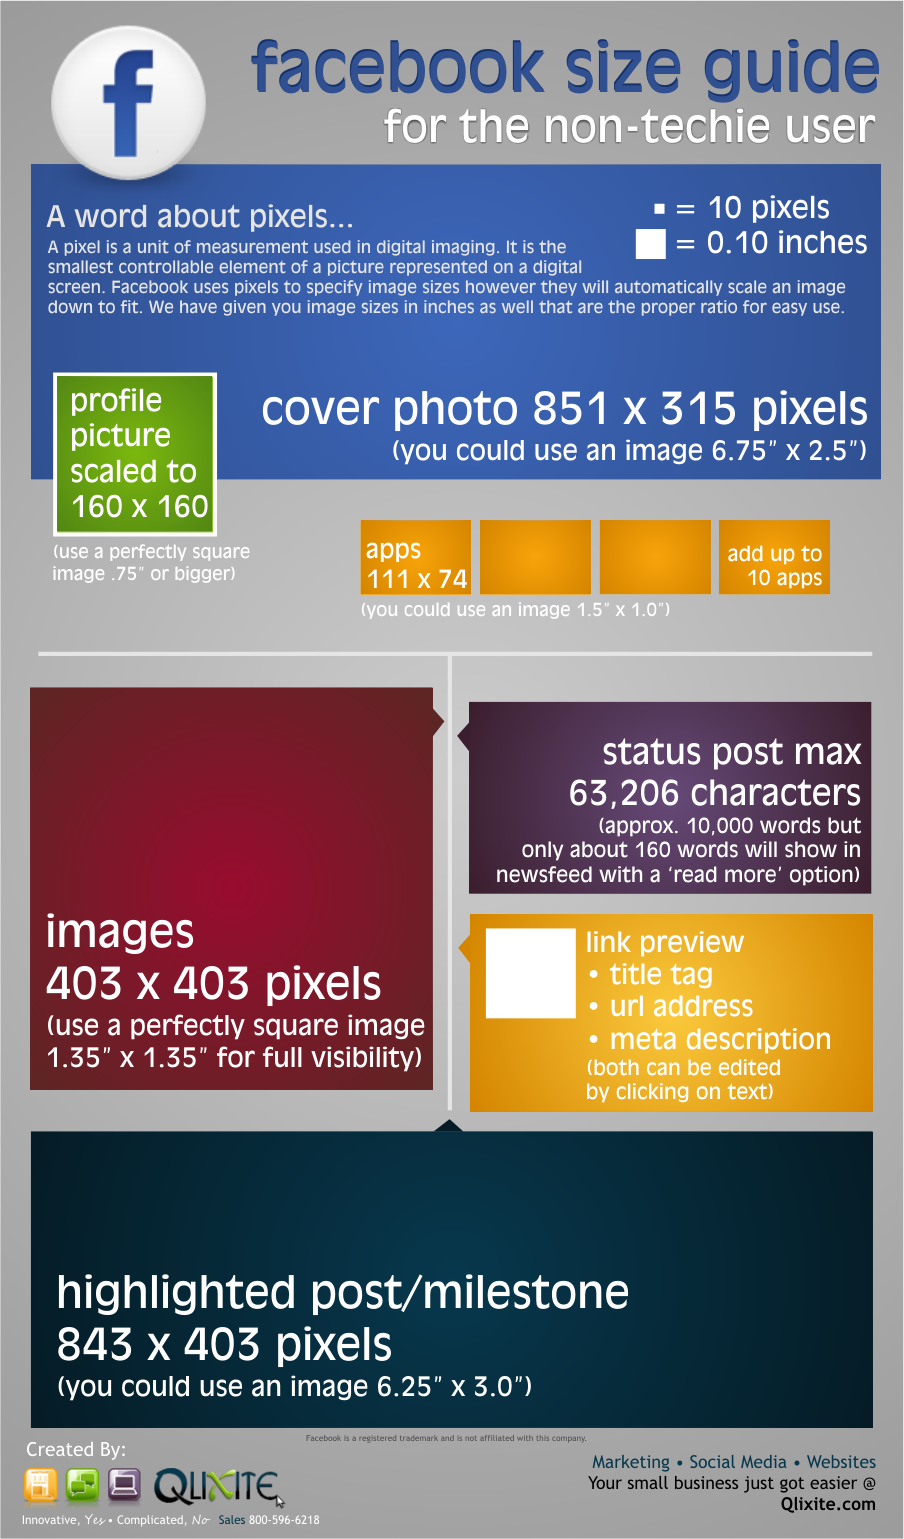 Qlixite Blog: Facebook Page Size Guide (for non-techie users)